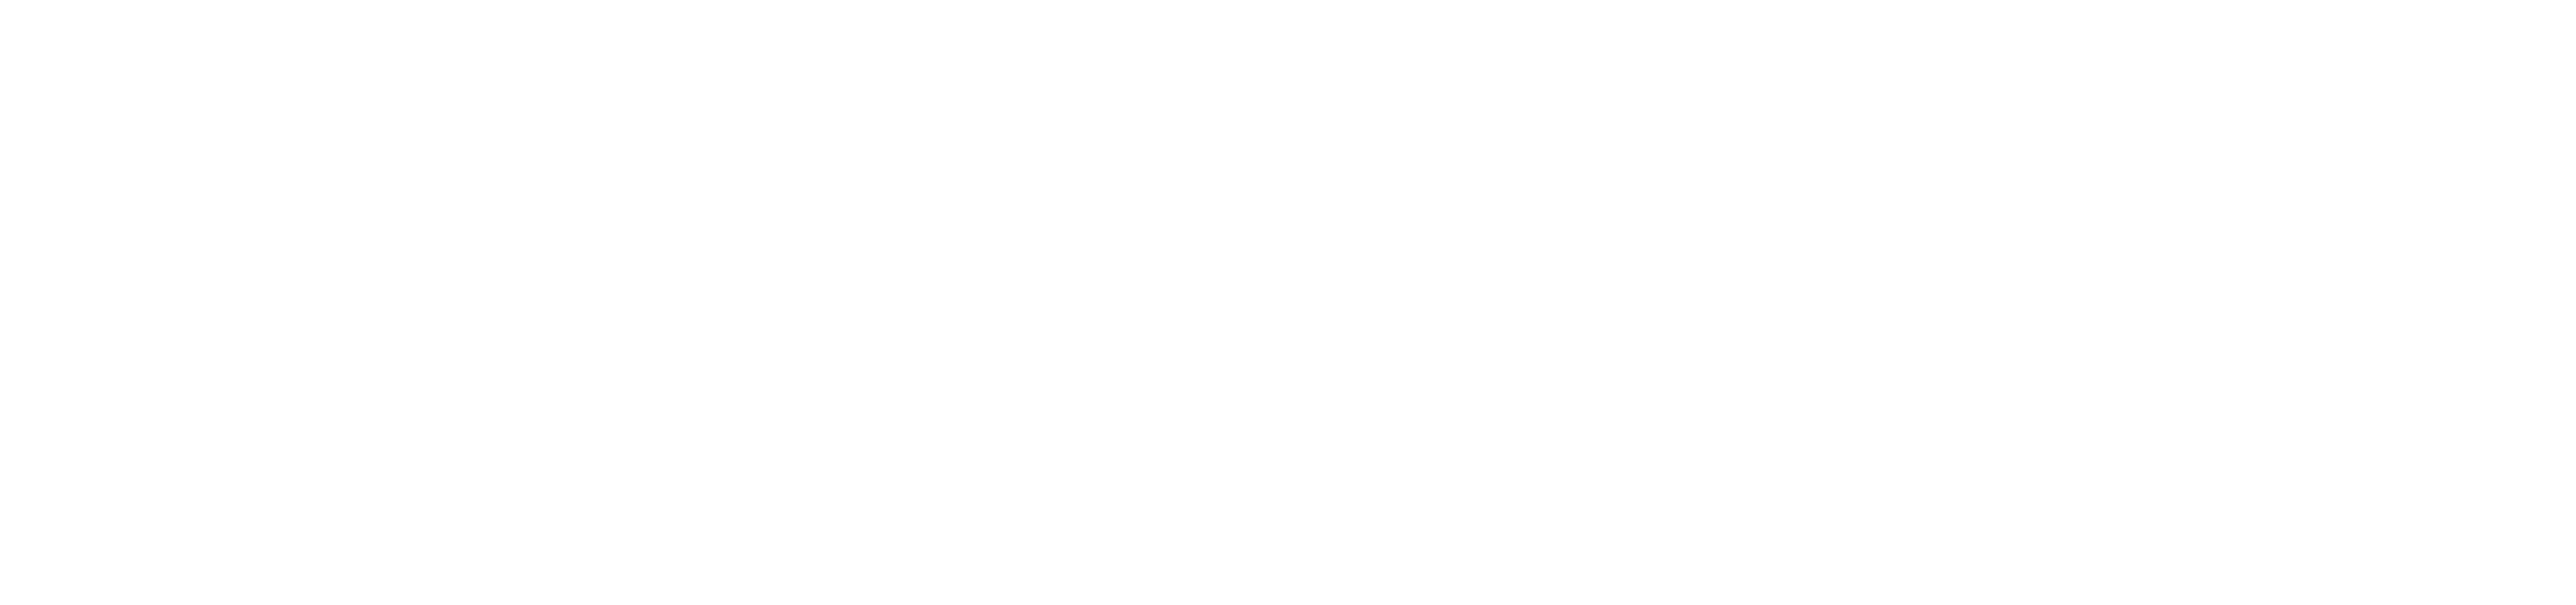 www.mybusinessagility.com logo and slogan